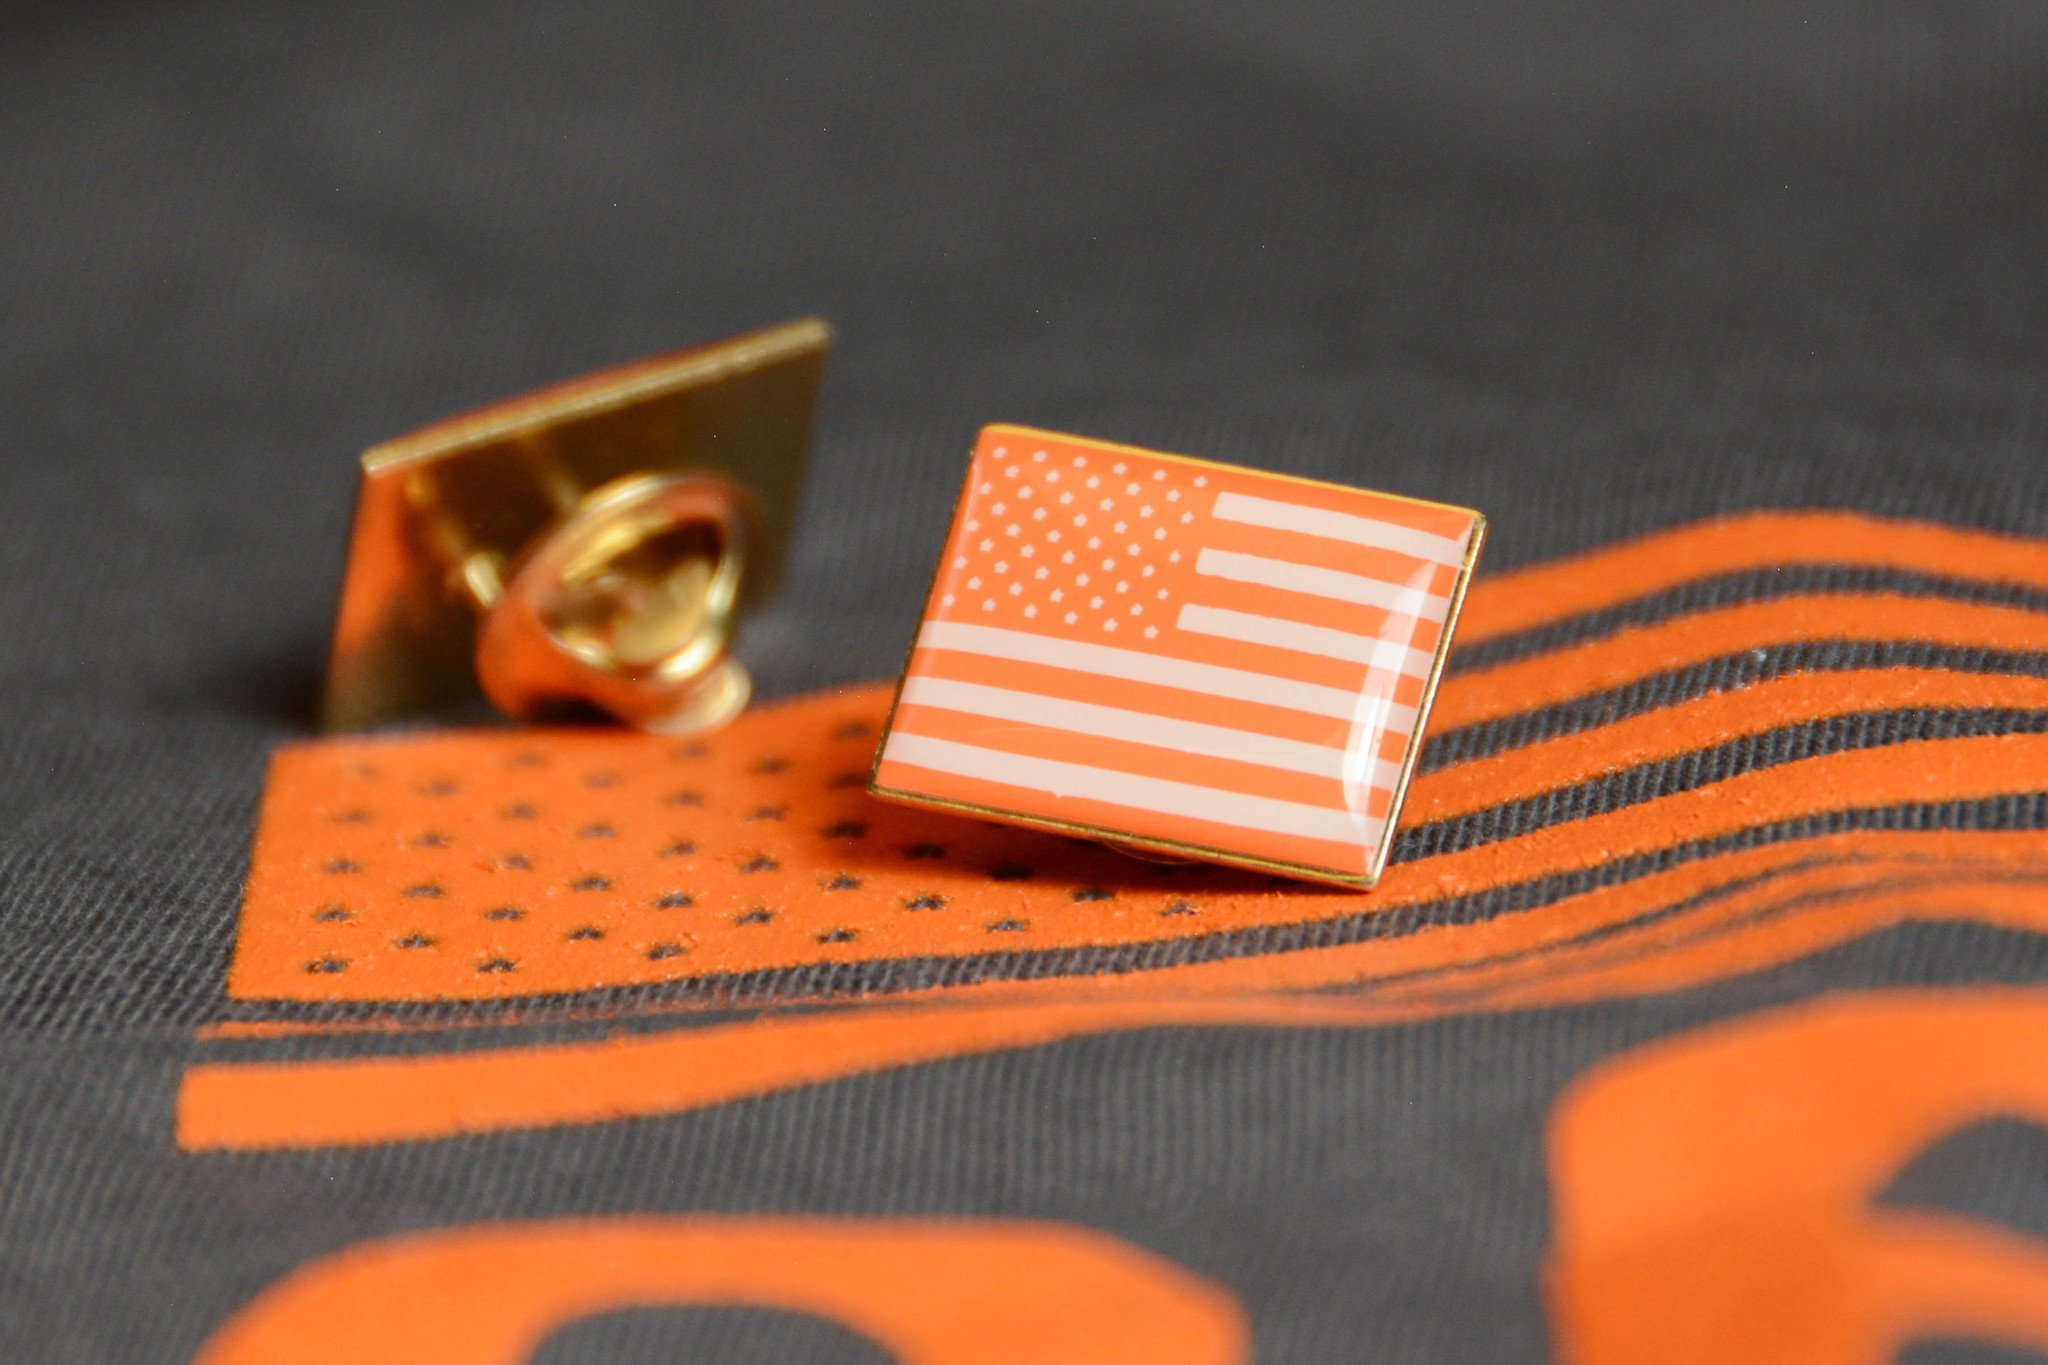 Oscars 2018: Actors wear orange American Flag pins for advocating gun safety